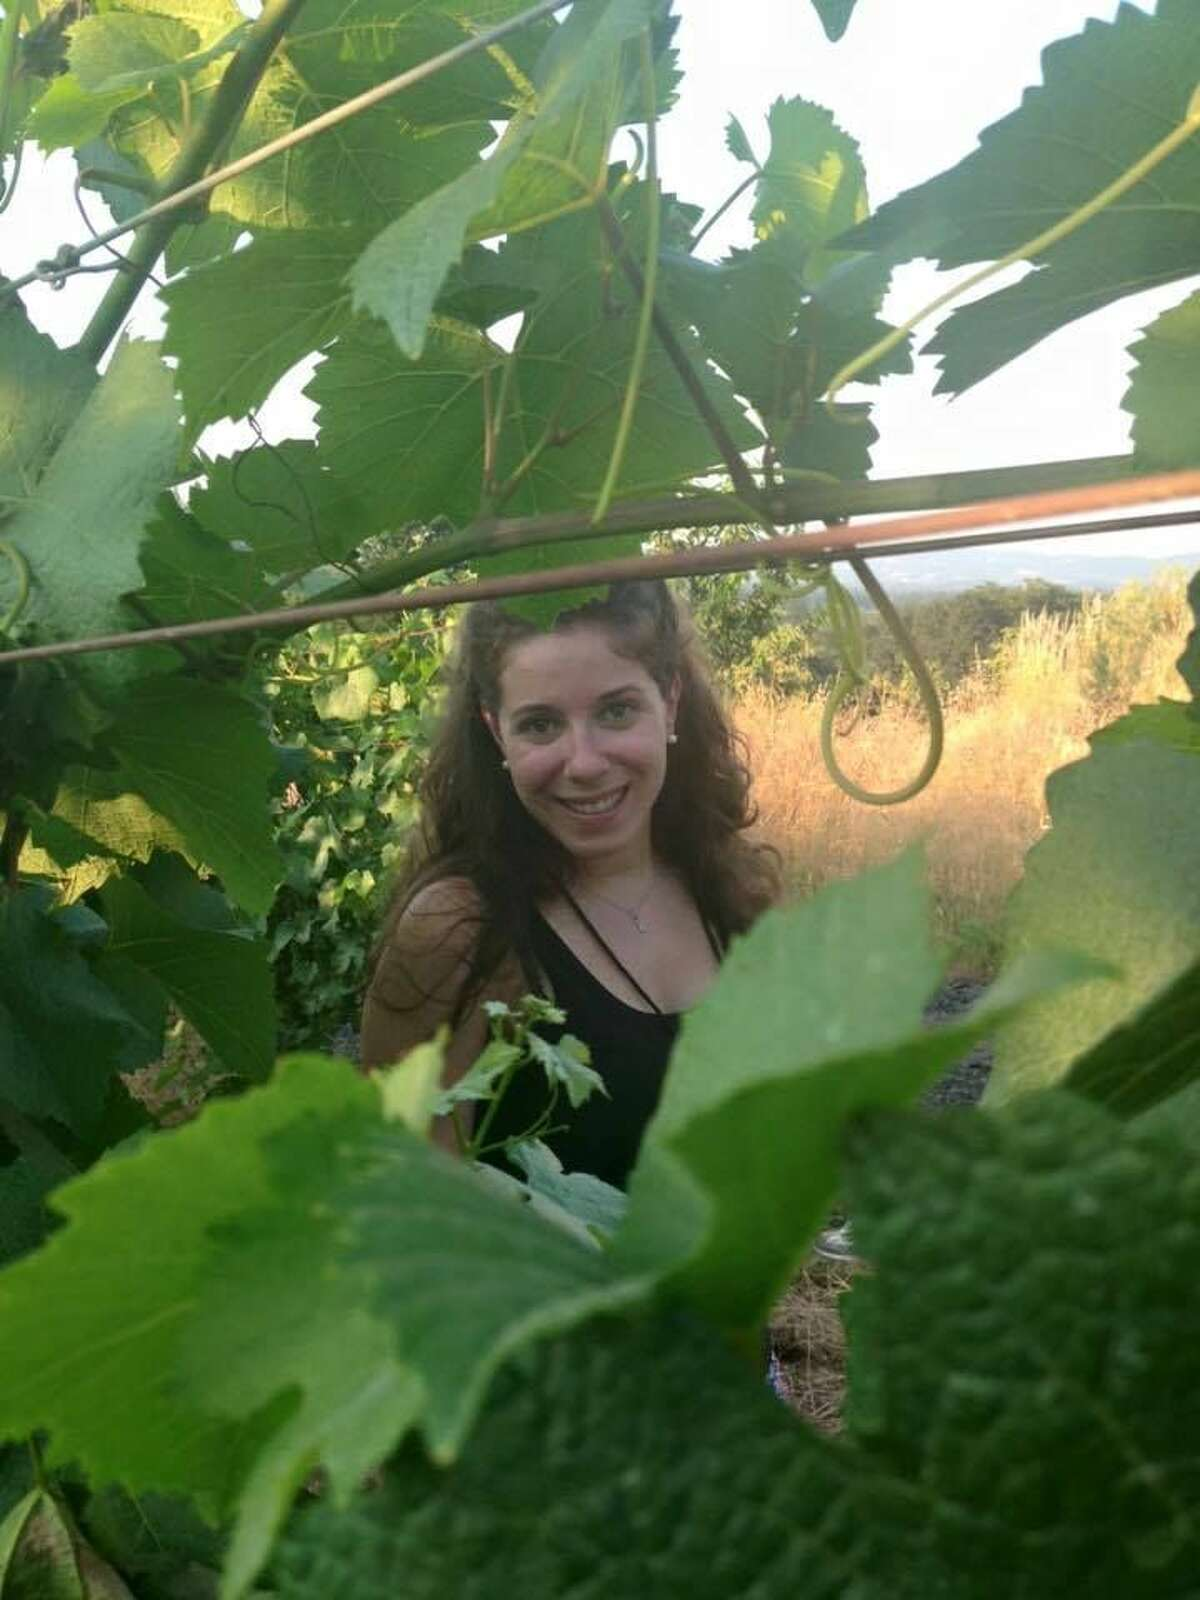 East Greenwich, RI: The Savory Grape, Rhode Island's premier wine shop, is proud to announce that wine buyer, Samantha Disenga, was 1 of less than 250 people chosen nationwide to attend Oregon Pinot Camp (OPC), an annual event hosted by wineries in the Willamette Valley each June.   Born and raised in Rhode Island, Samantha graduated from Johnson & Wales University earning an Associate degree in Culinary Arts and a Bachelor degree in Food Service Management with a concentration in Beverage Management. Samantha has traveled to Napa & Sonoma Valleys to learn about the varietals that grow best there - Cabernet Sauvignon and Chardonnay. She is very passionate about cooking and creating savory dishes along with well-paired wines.   Oregon Pinot Camp is an annual seminar held in the heart of Oregon wine country each June for 250 invited members of the wine trade. Only members of the wine trade who are invited by a participating OPC winery are eligible to attend Oregon Pinot Camp. Samantha was nominated to attend this year's camp by Foris Vineyards, Adelsheim Vineyard, and Anne Amie Vineyards.